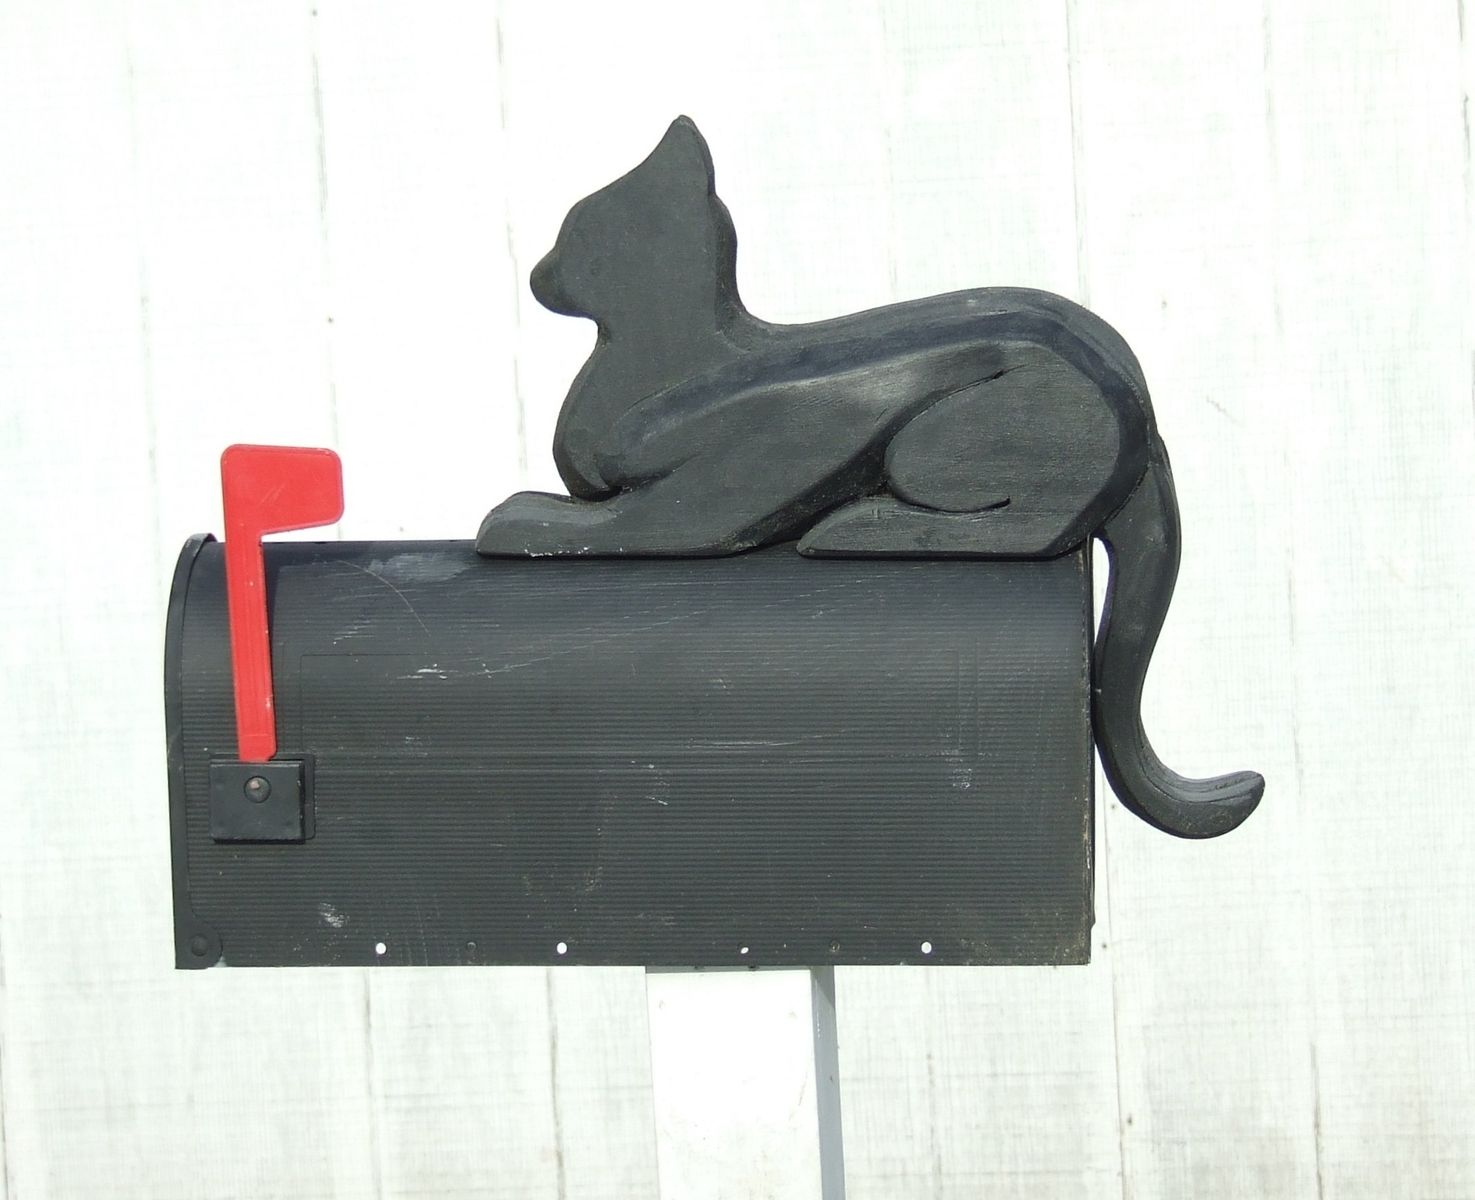 Cat Mailbox Art | house stuff | Pinterest | Curb appeal and House on residential foundation repair, residential garden designs, residential door designs, residential group homes, residential rental agreement, residential house, residential pest control, residential marketing, residential fence designs, residential pool designs, residential over retail, residential front porch designs, residential sewer systems, residential high-rise building, residential architecture, residential living spaces, residential rental application, residential building plans, residential ceiling designs, residential property management,